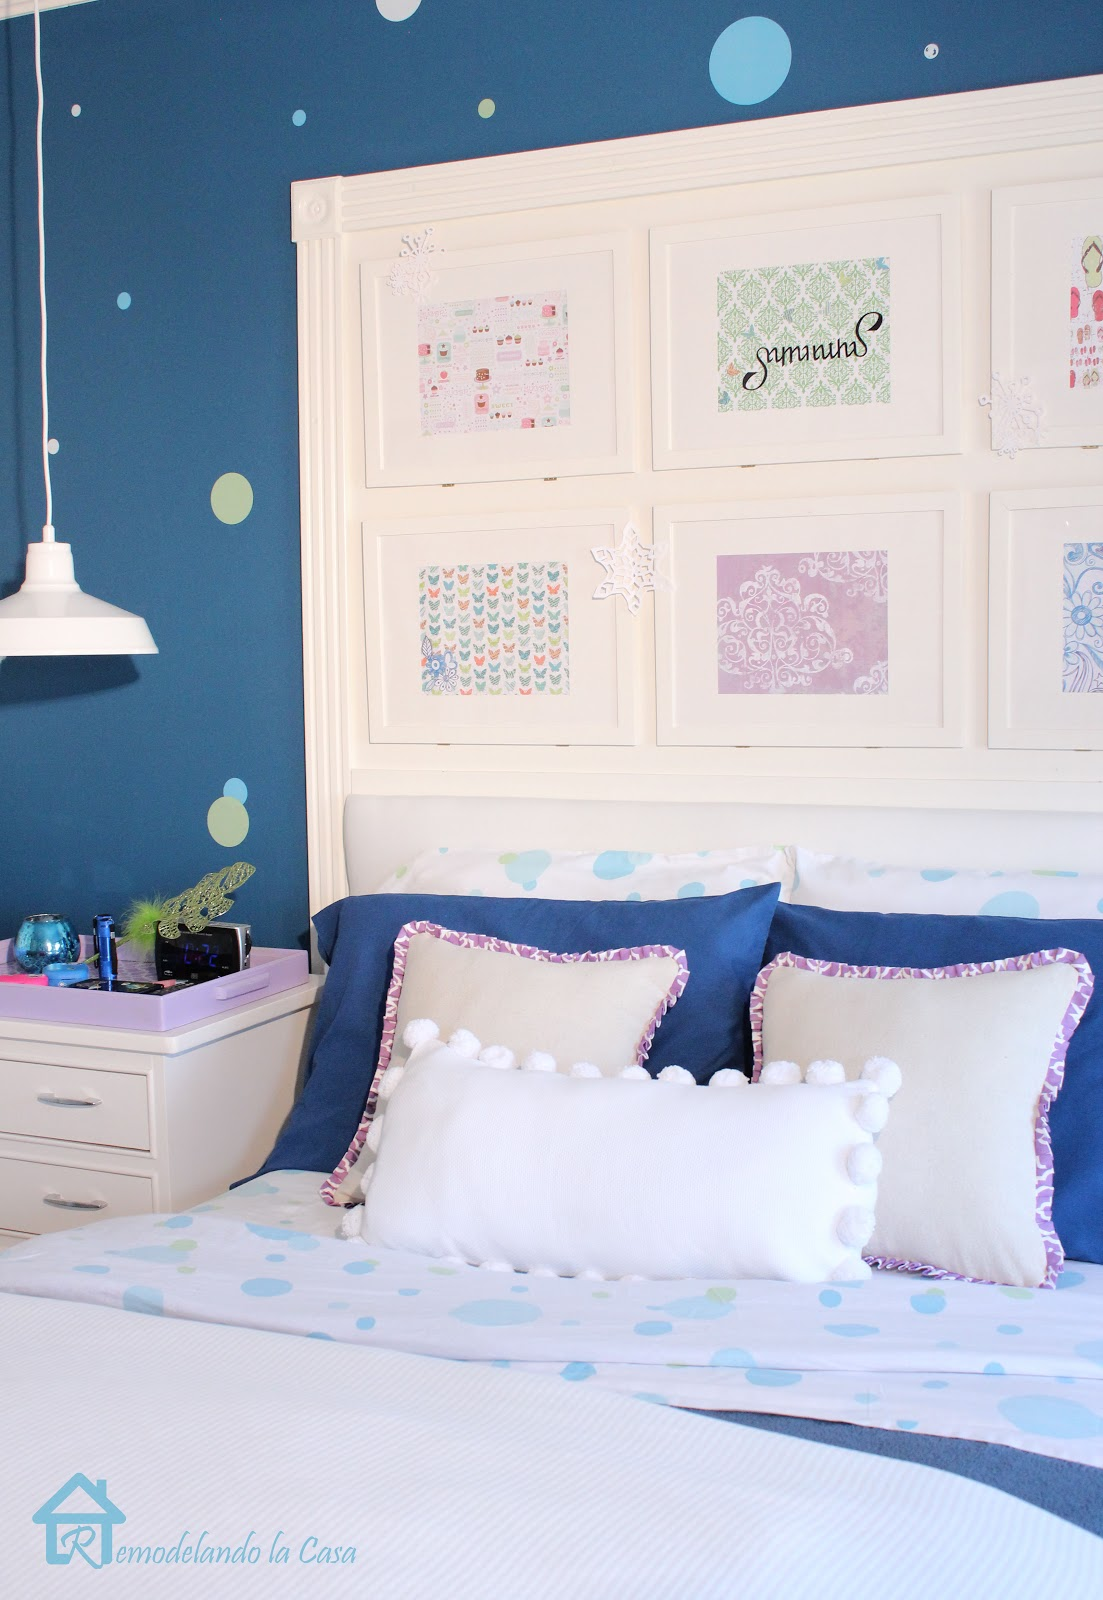 pictures frames put together to create a bed's headboard in girl room